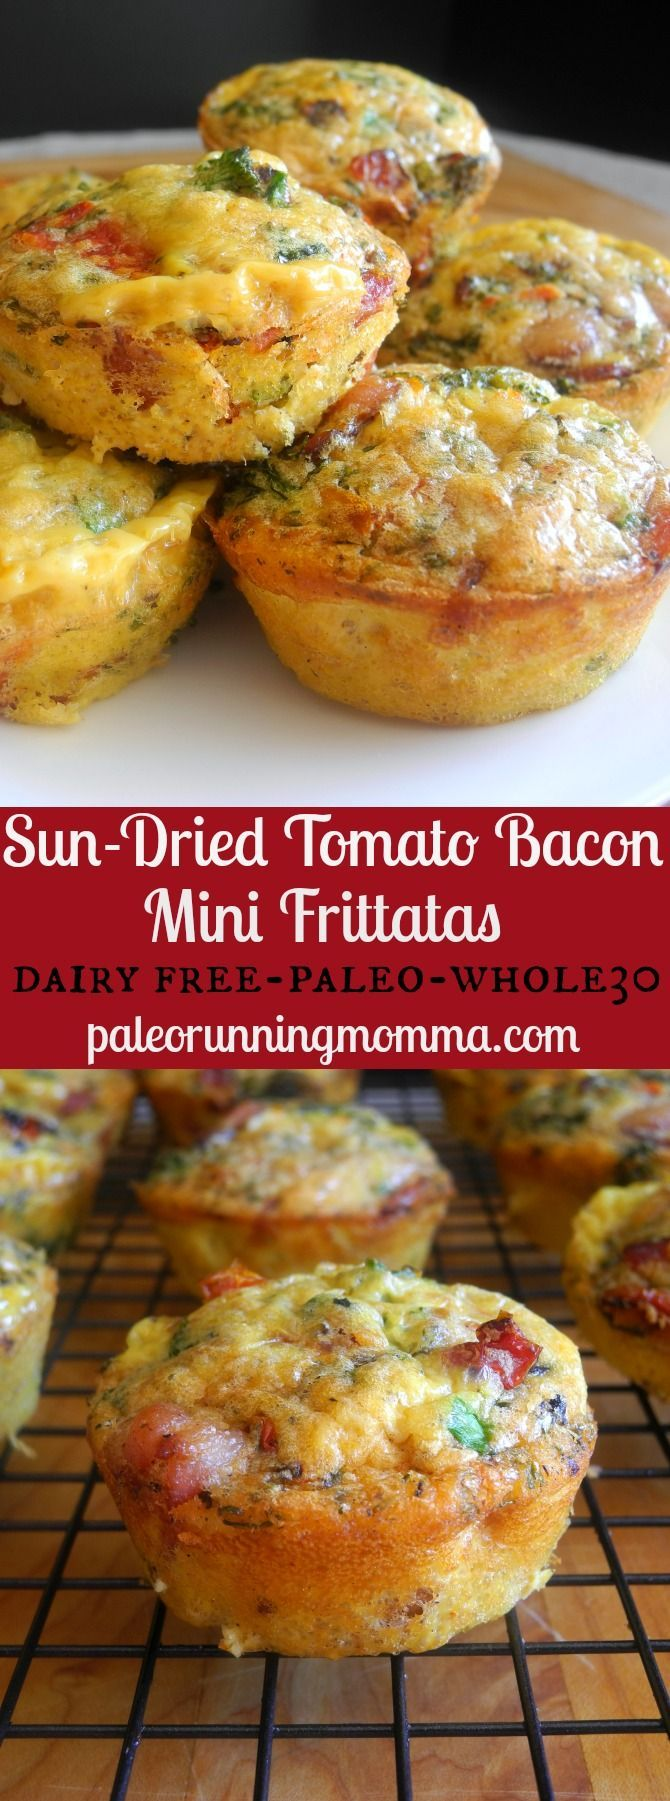 Sun-dried tomato, bacon, broccolini mini-frittatas